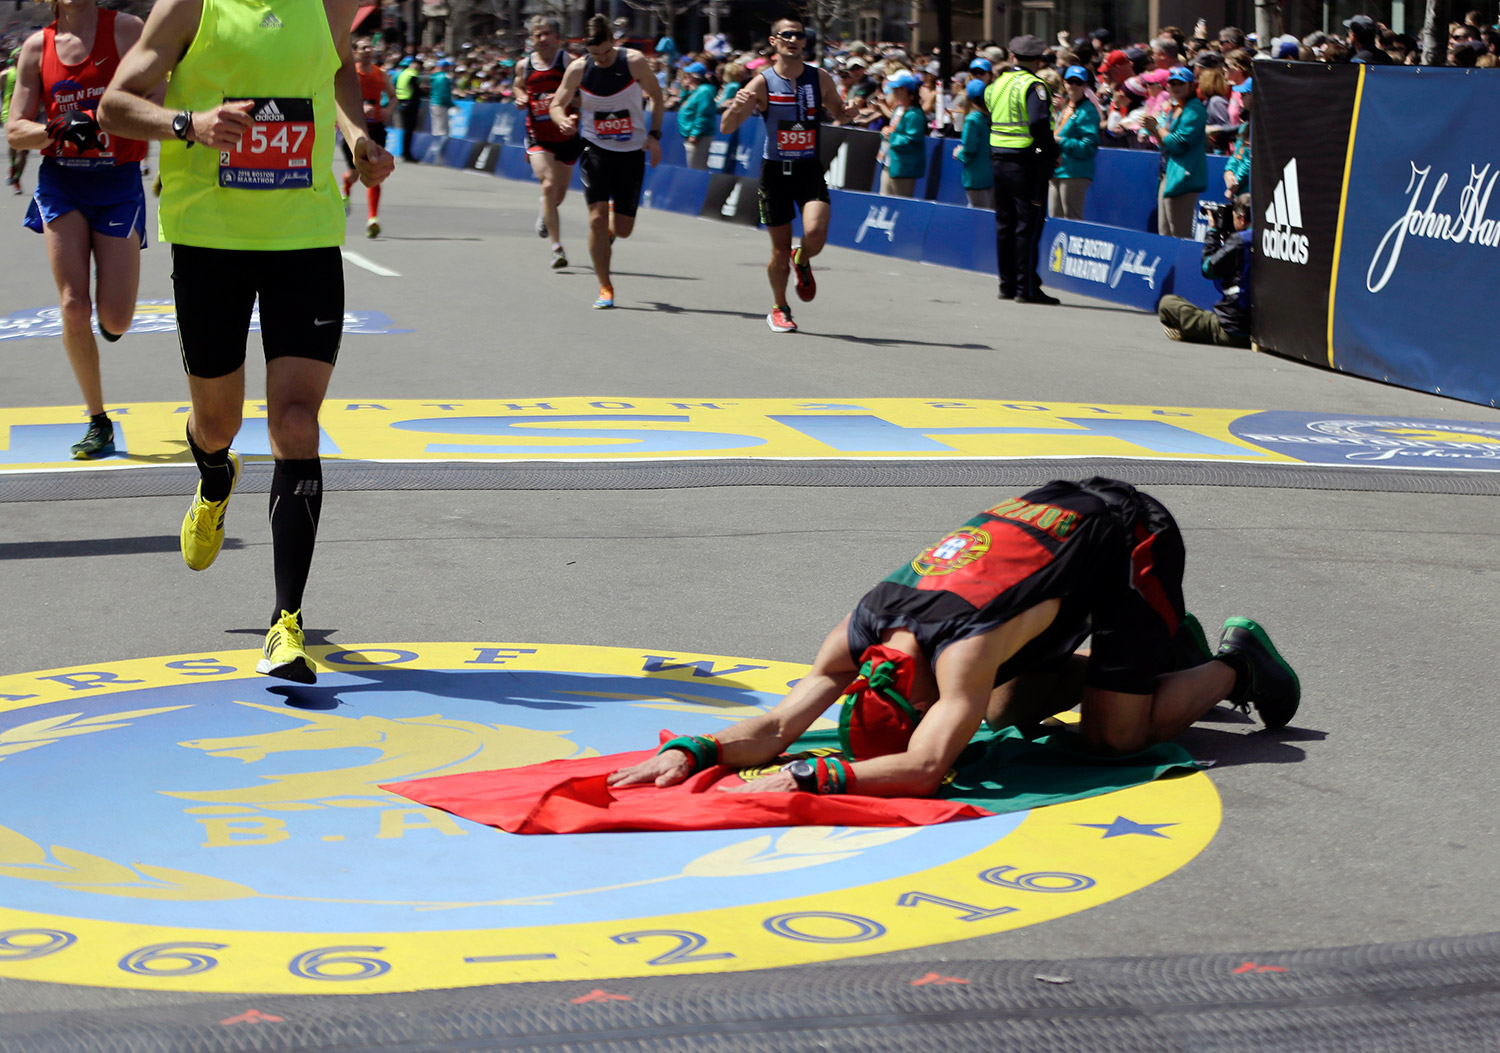 Of canada kneels on a flag of portugal after finishing the marathon